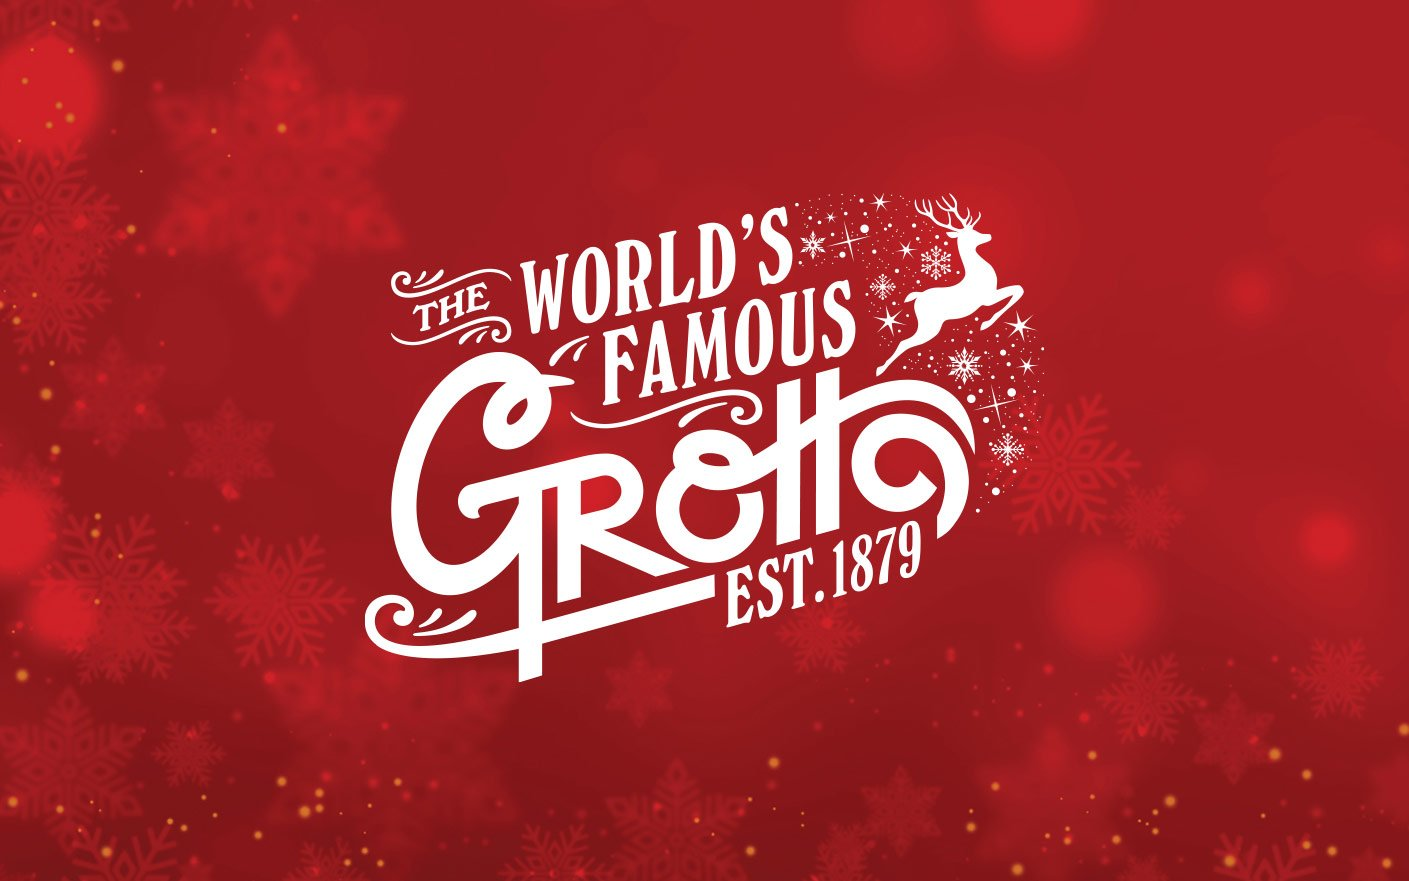 The World's Famous Grotto 2019 at St John's Shopping Centre Liverpool Project